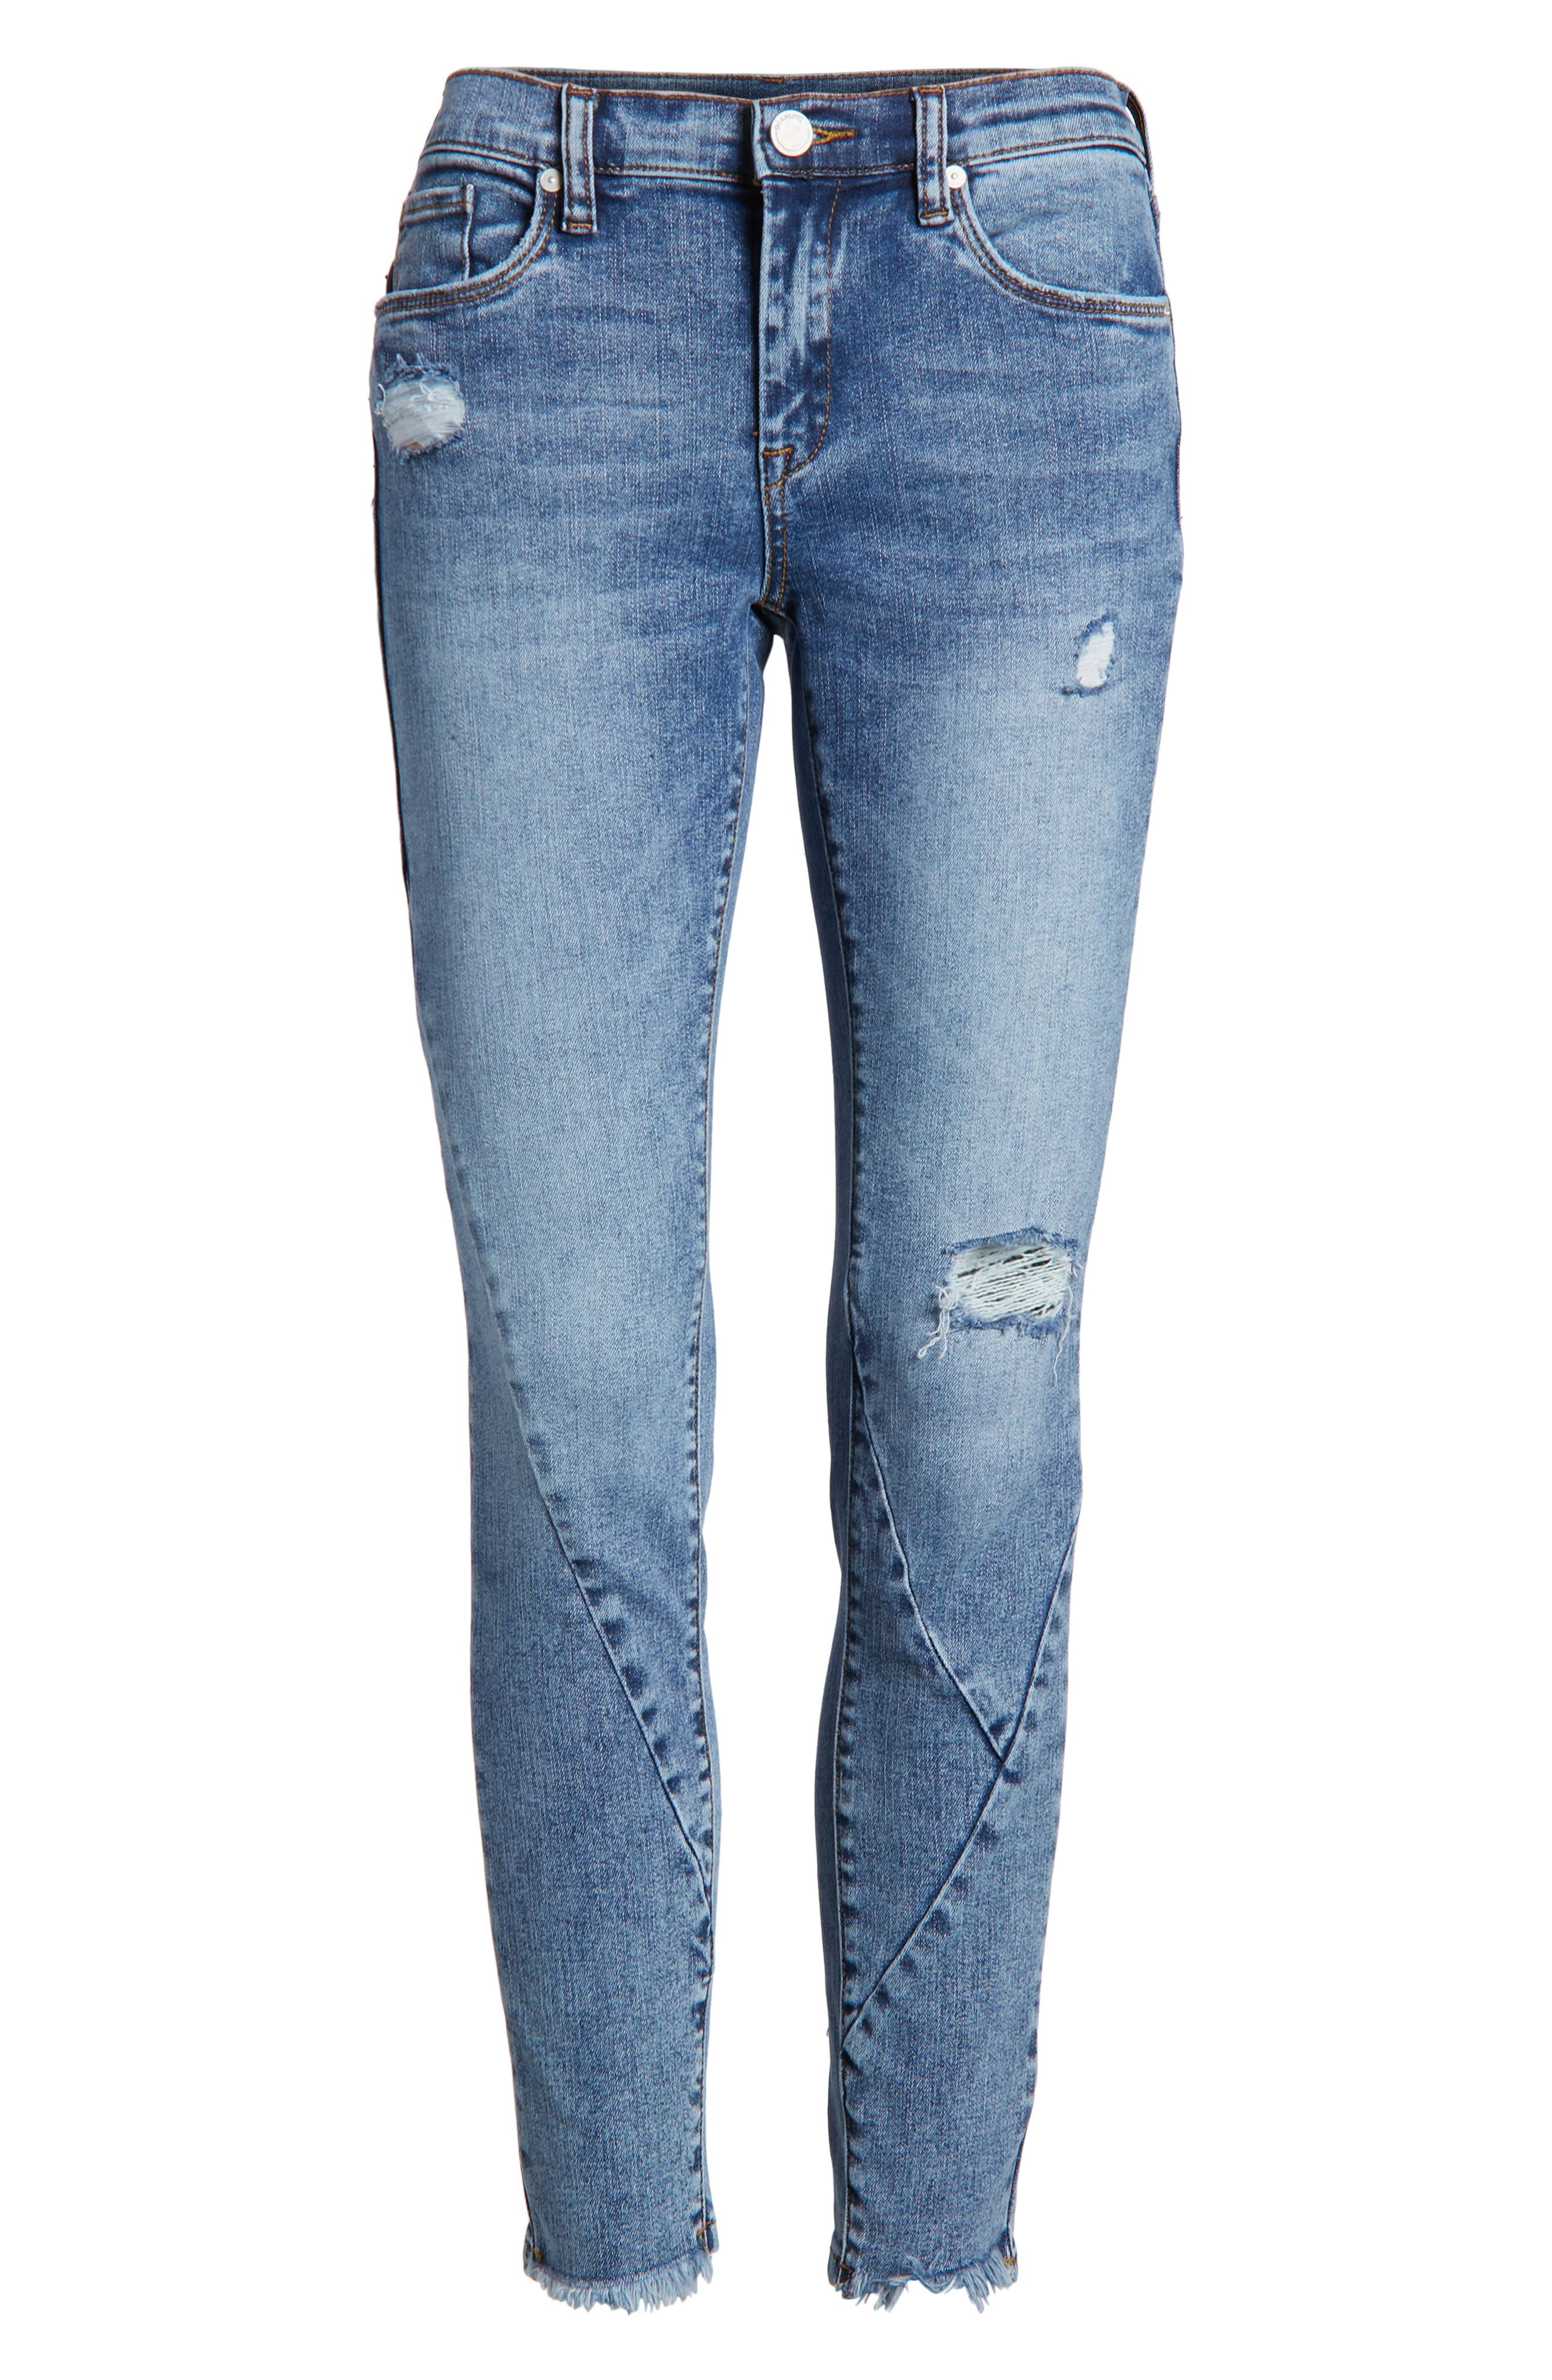 Jagger Ripped Skinny Jeans,                             Alternate thumbnail 7, color,                             403